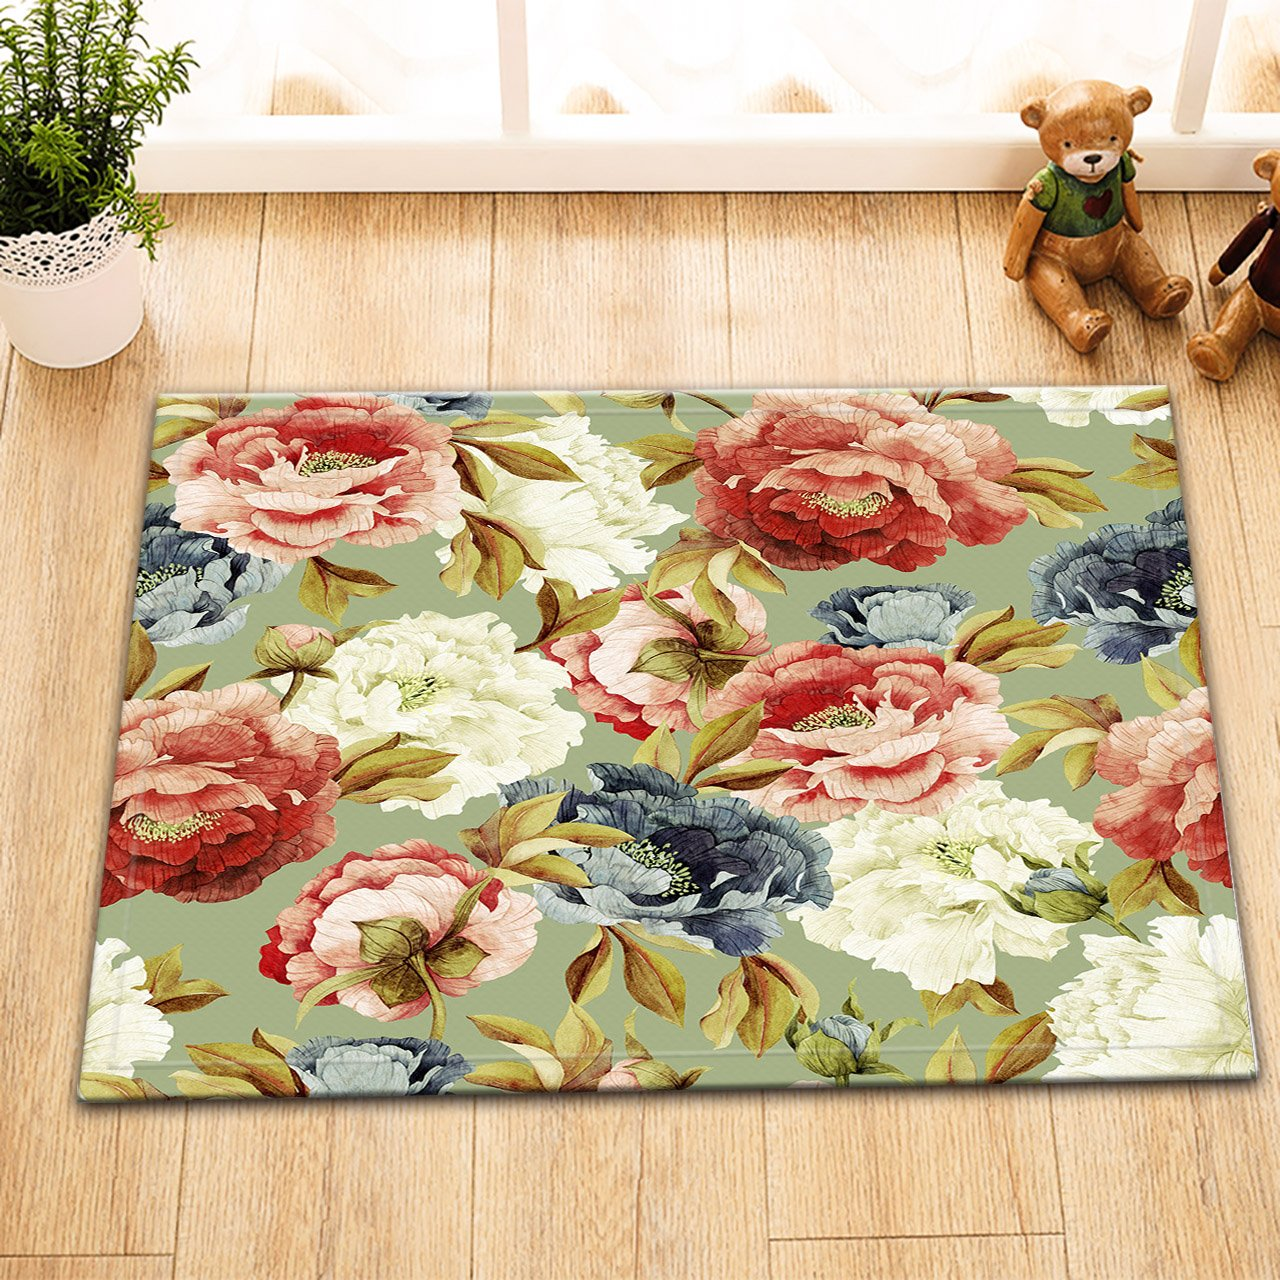 Amazon.com: LB Vintage Country Floral Pattern Printed Small ...